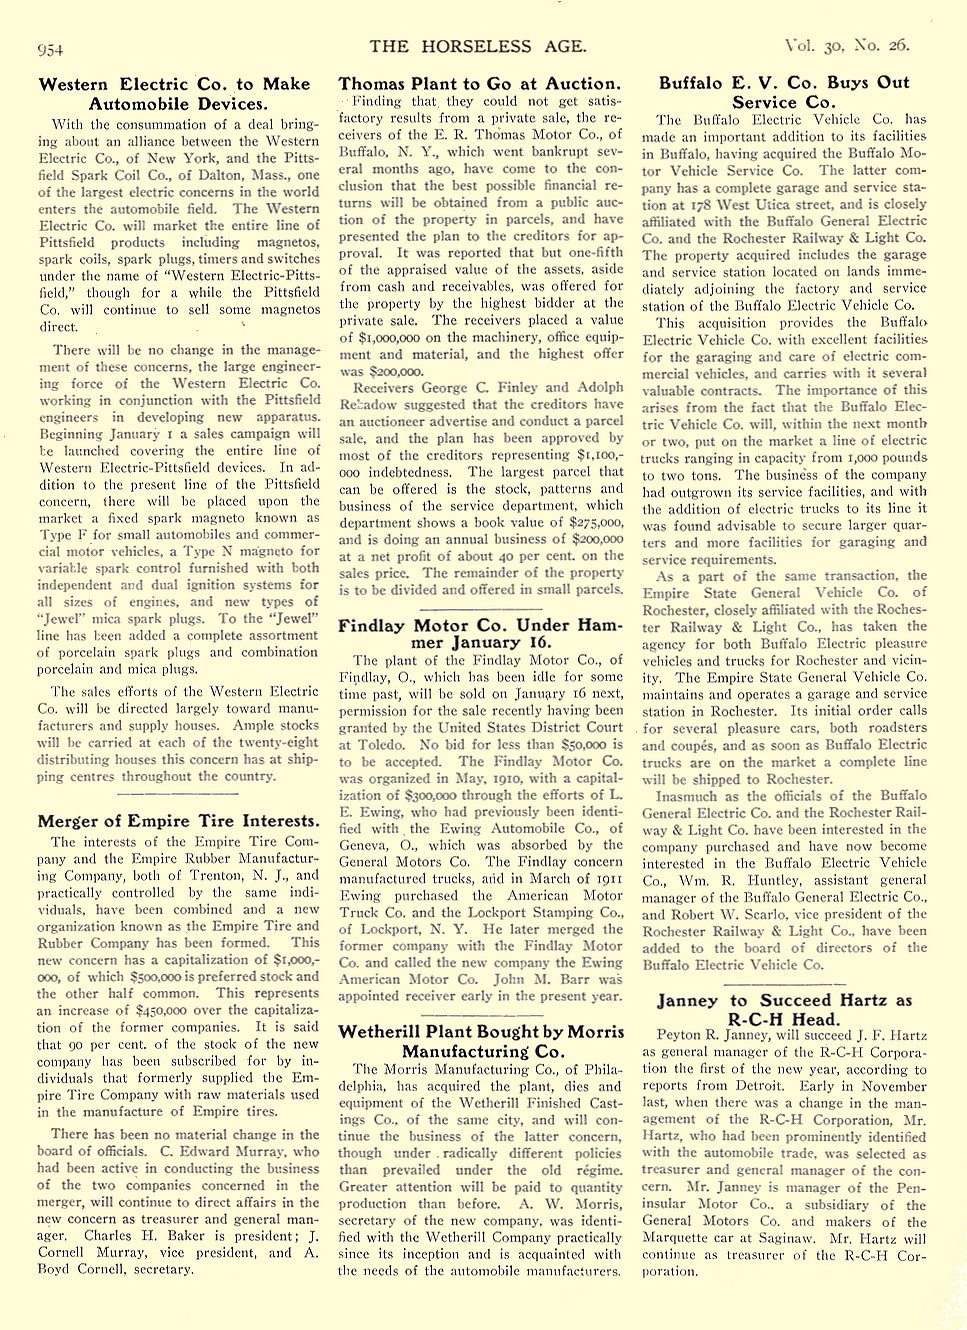 1912 12 25 BUFFALO Electric Article Buffalo E. V. Co. Buys Out Service Co. THE HORSELESS AGE December 25, 1912 University of Minnesota Library 8.5″x11.5″ page 954